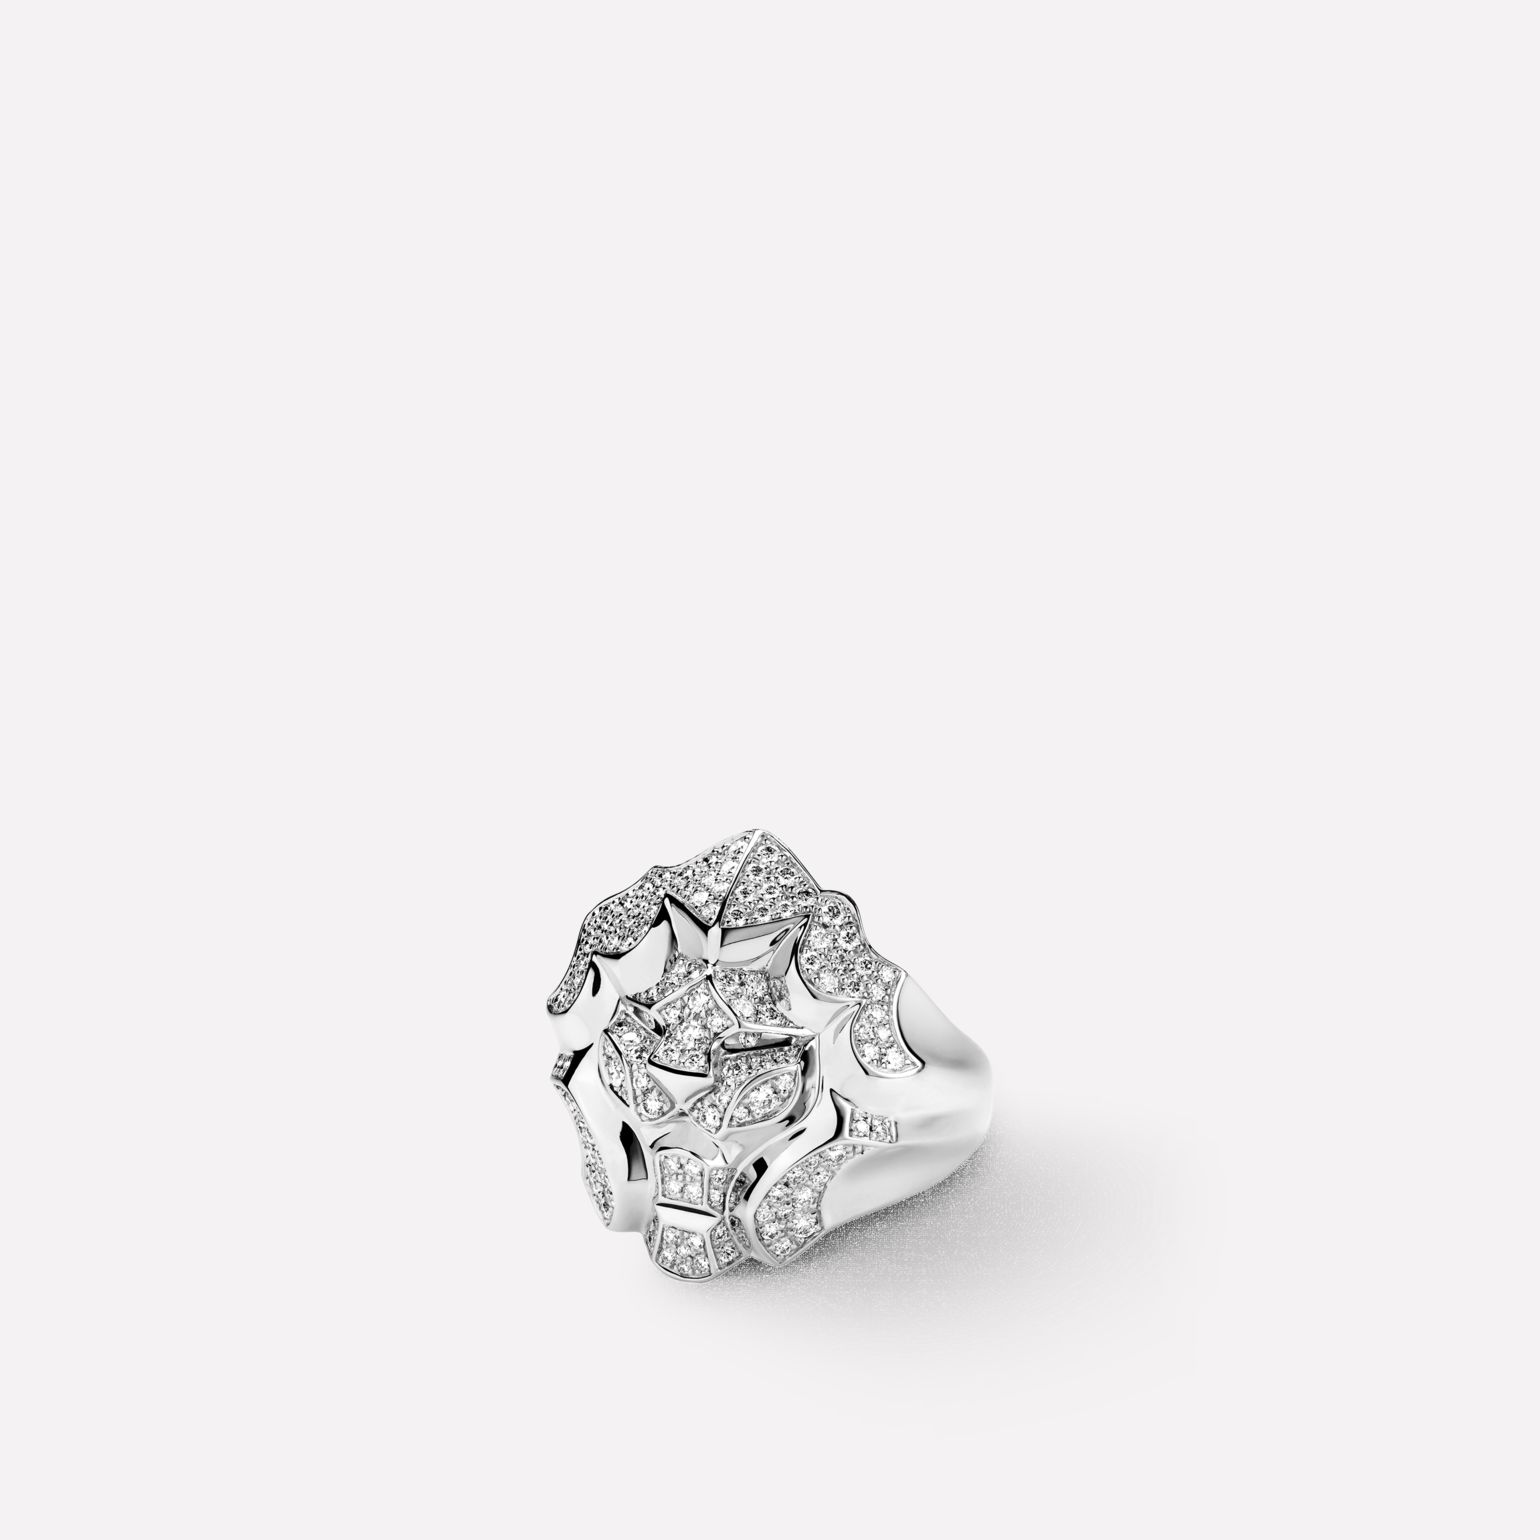 Sous le Signe du Lion ring 18K white gold, diamonds